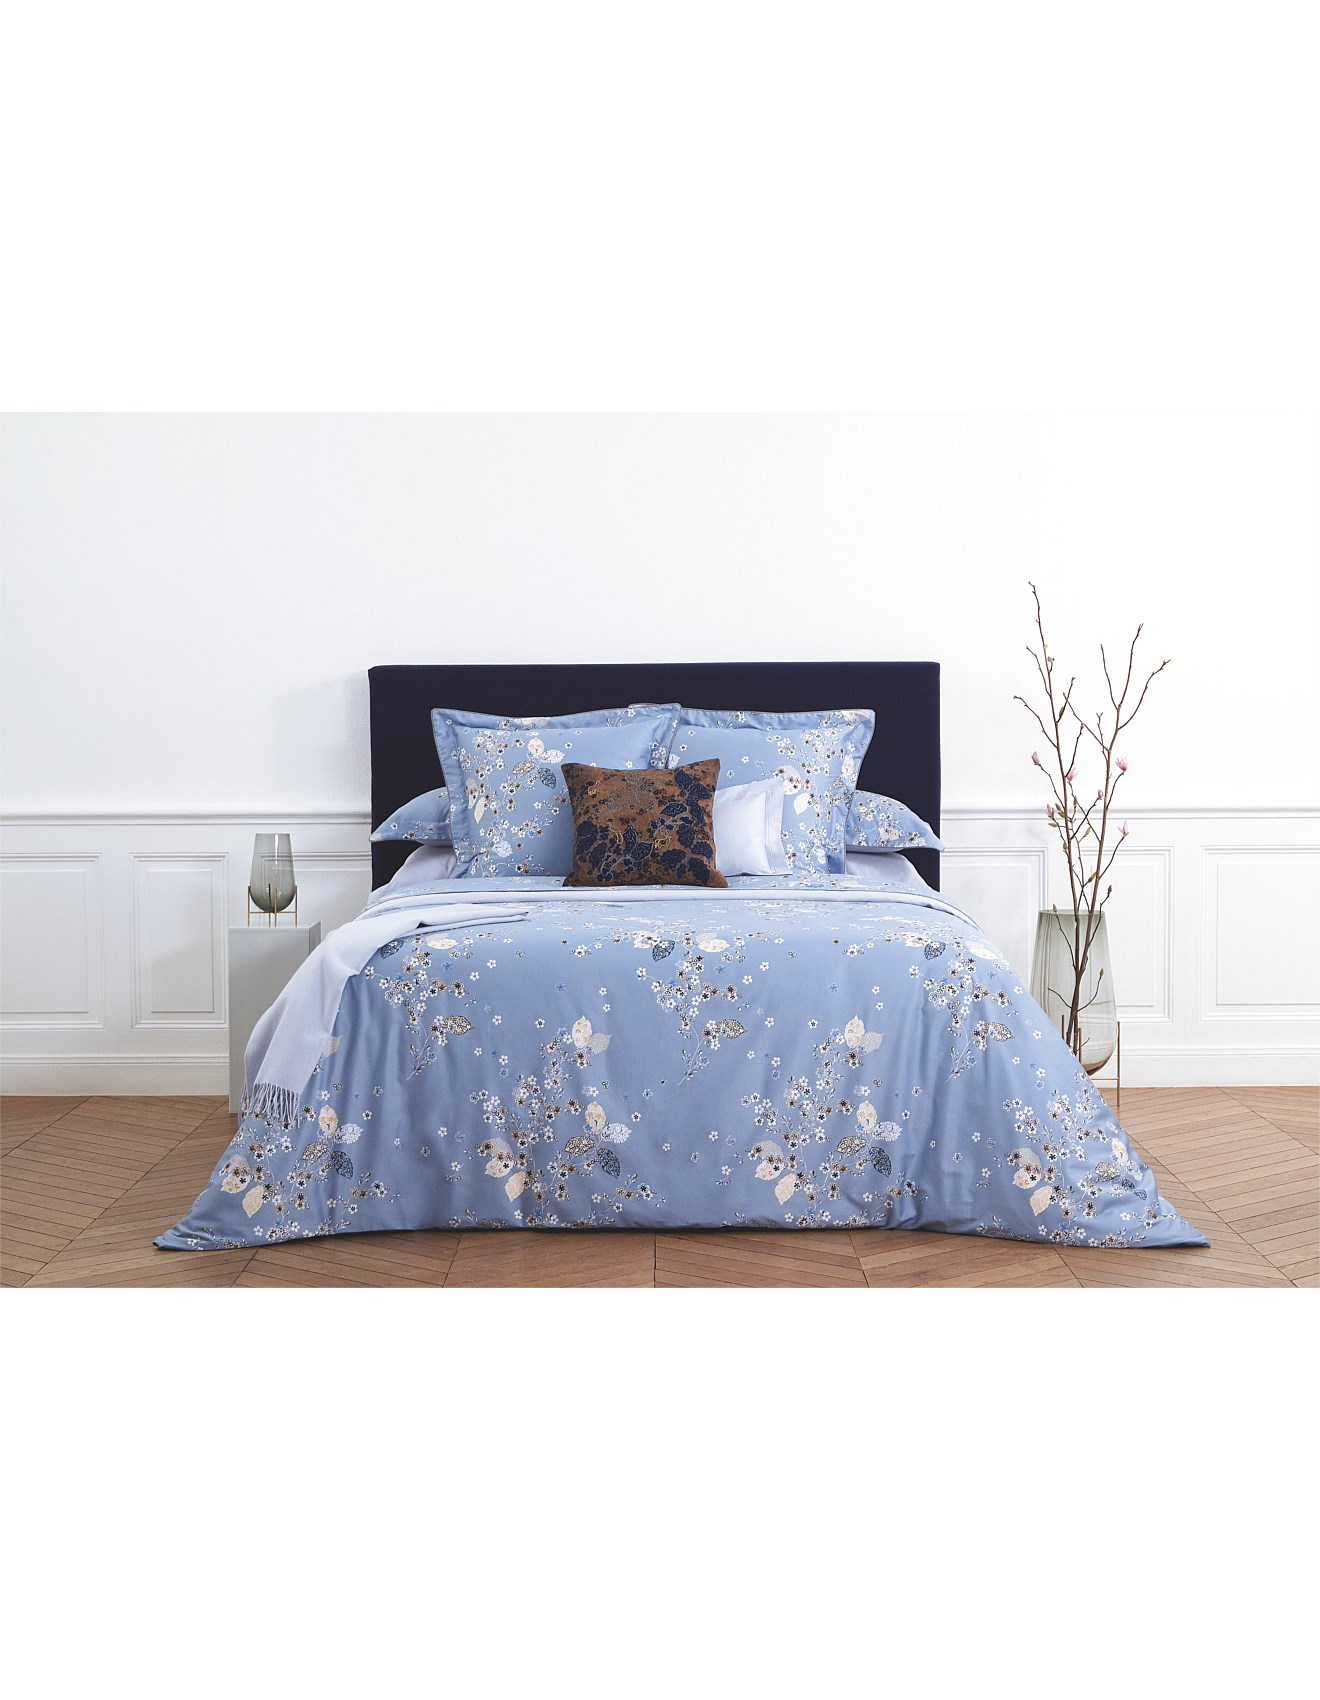 Yves Delorme Bed Linen Towels